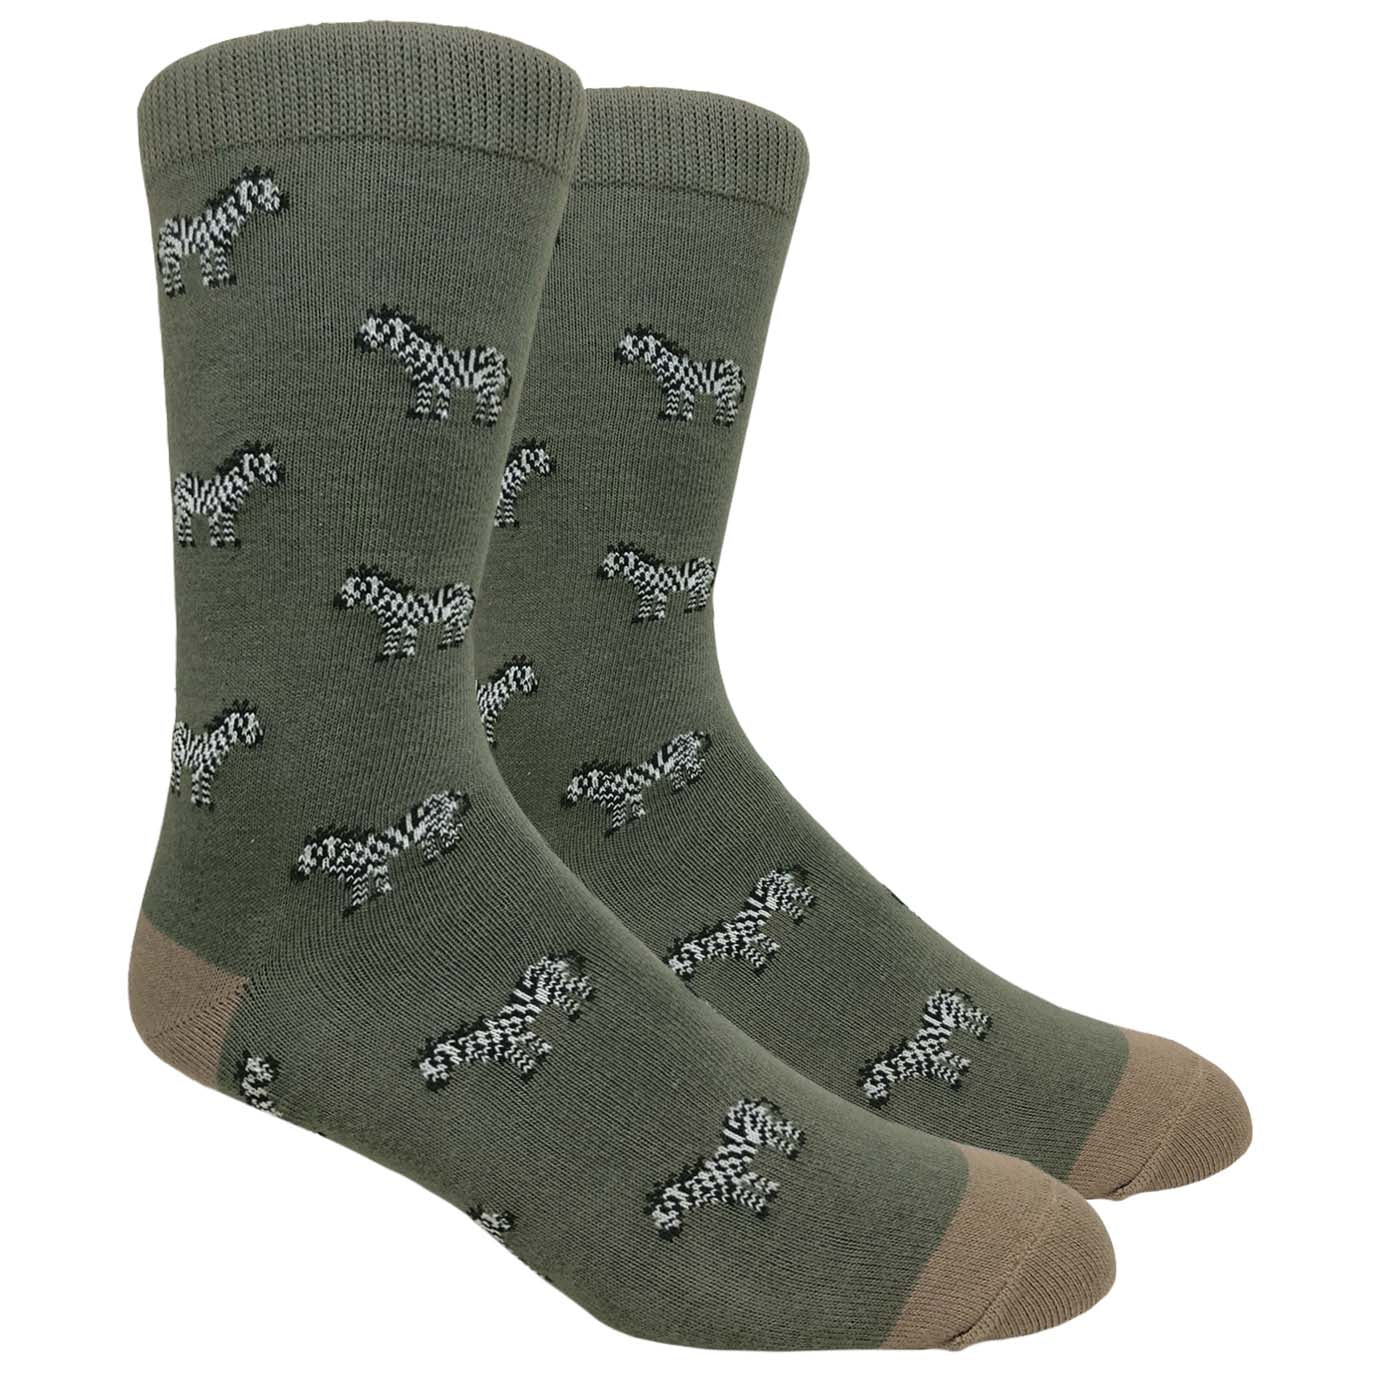 FineFit Black Label Novelty Socks - Charcoal Grey Zebras